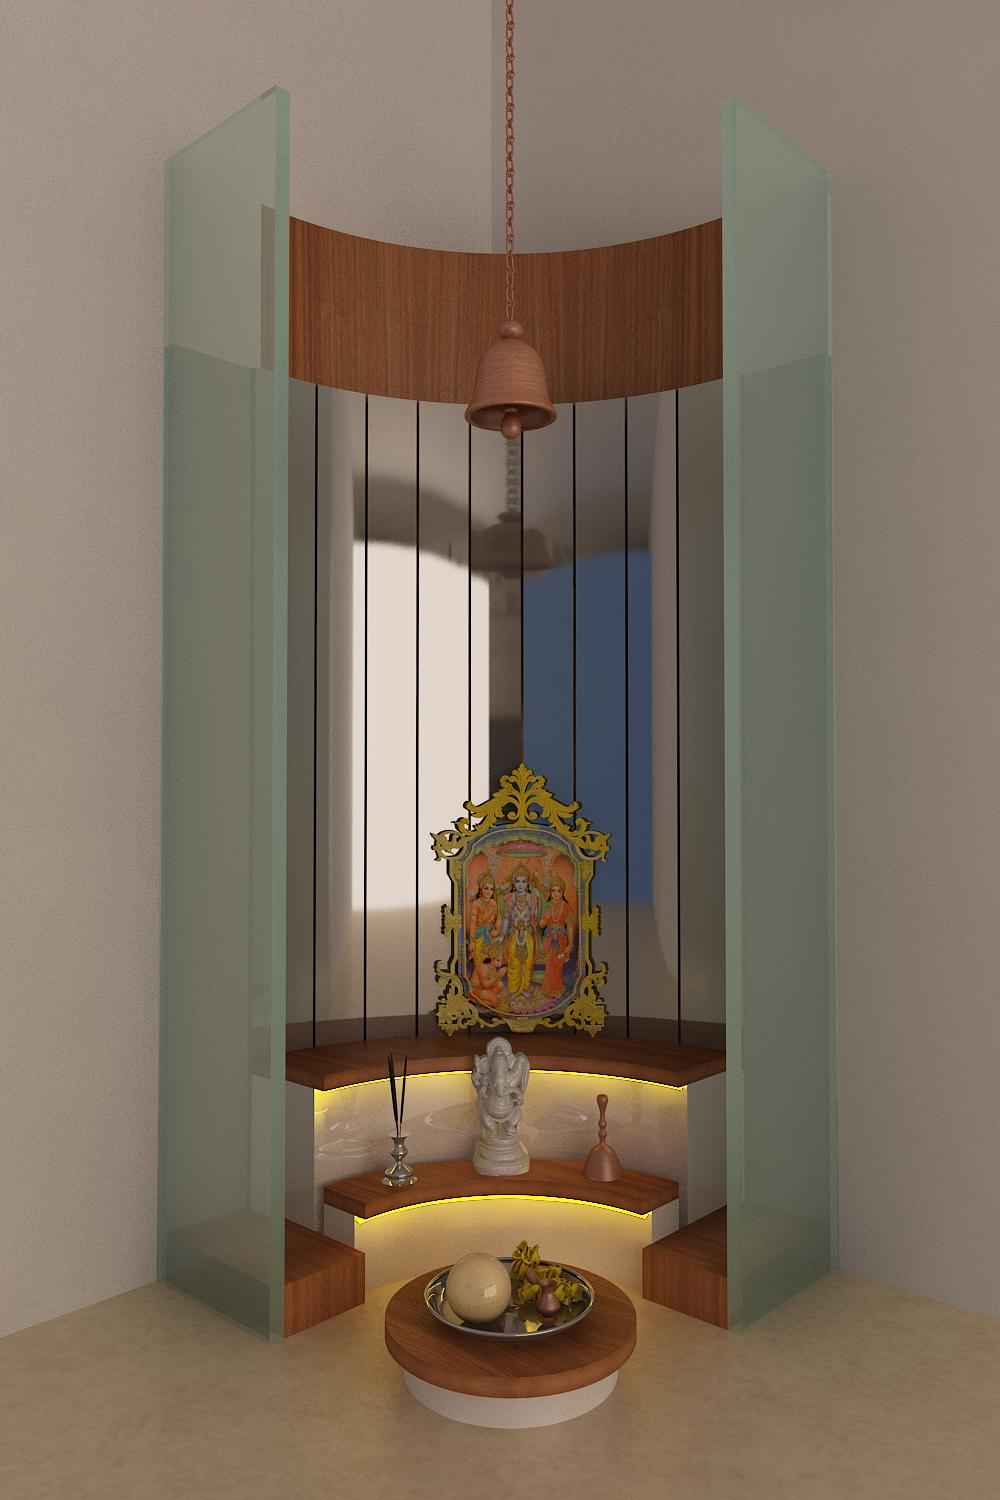 Pooja Room Door Design Photos Pictures: Pooja Room Door Design Photos, Pictures